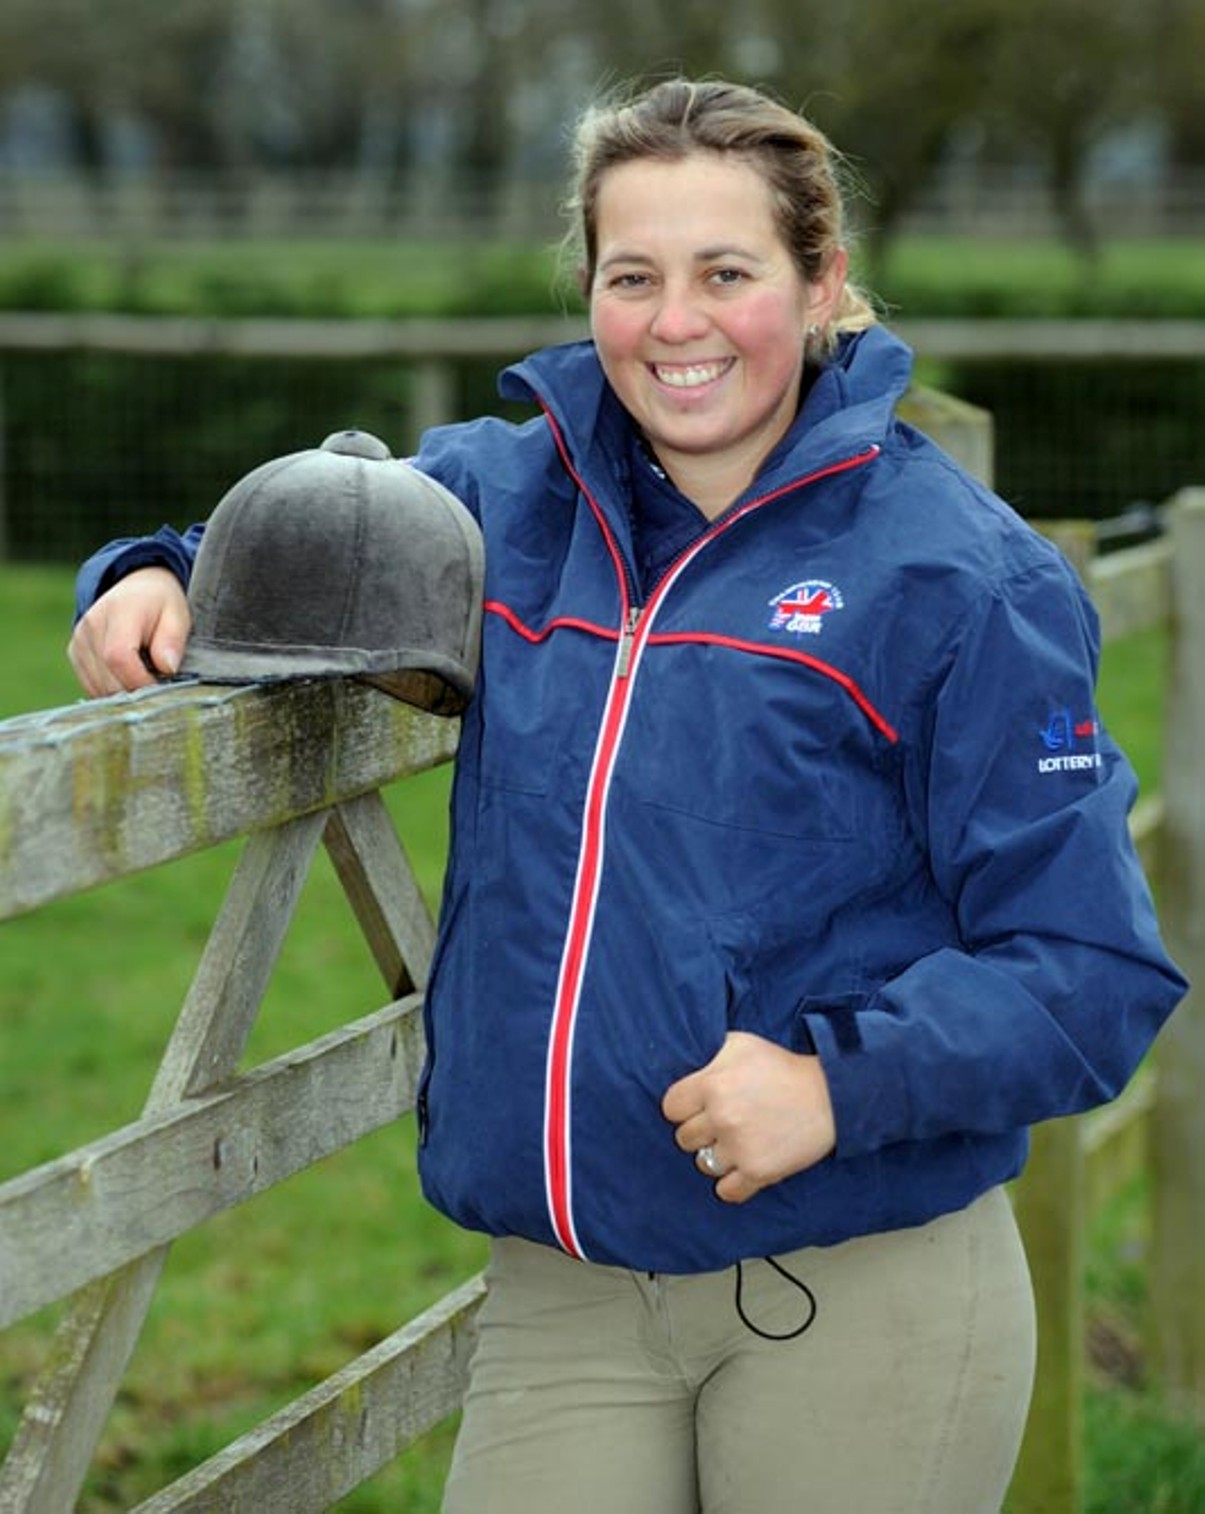 EVENTING: Funding boost puts Kitty King back with the elite